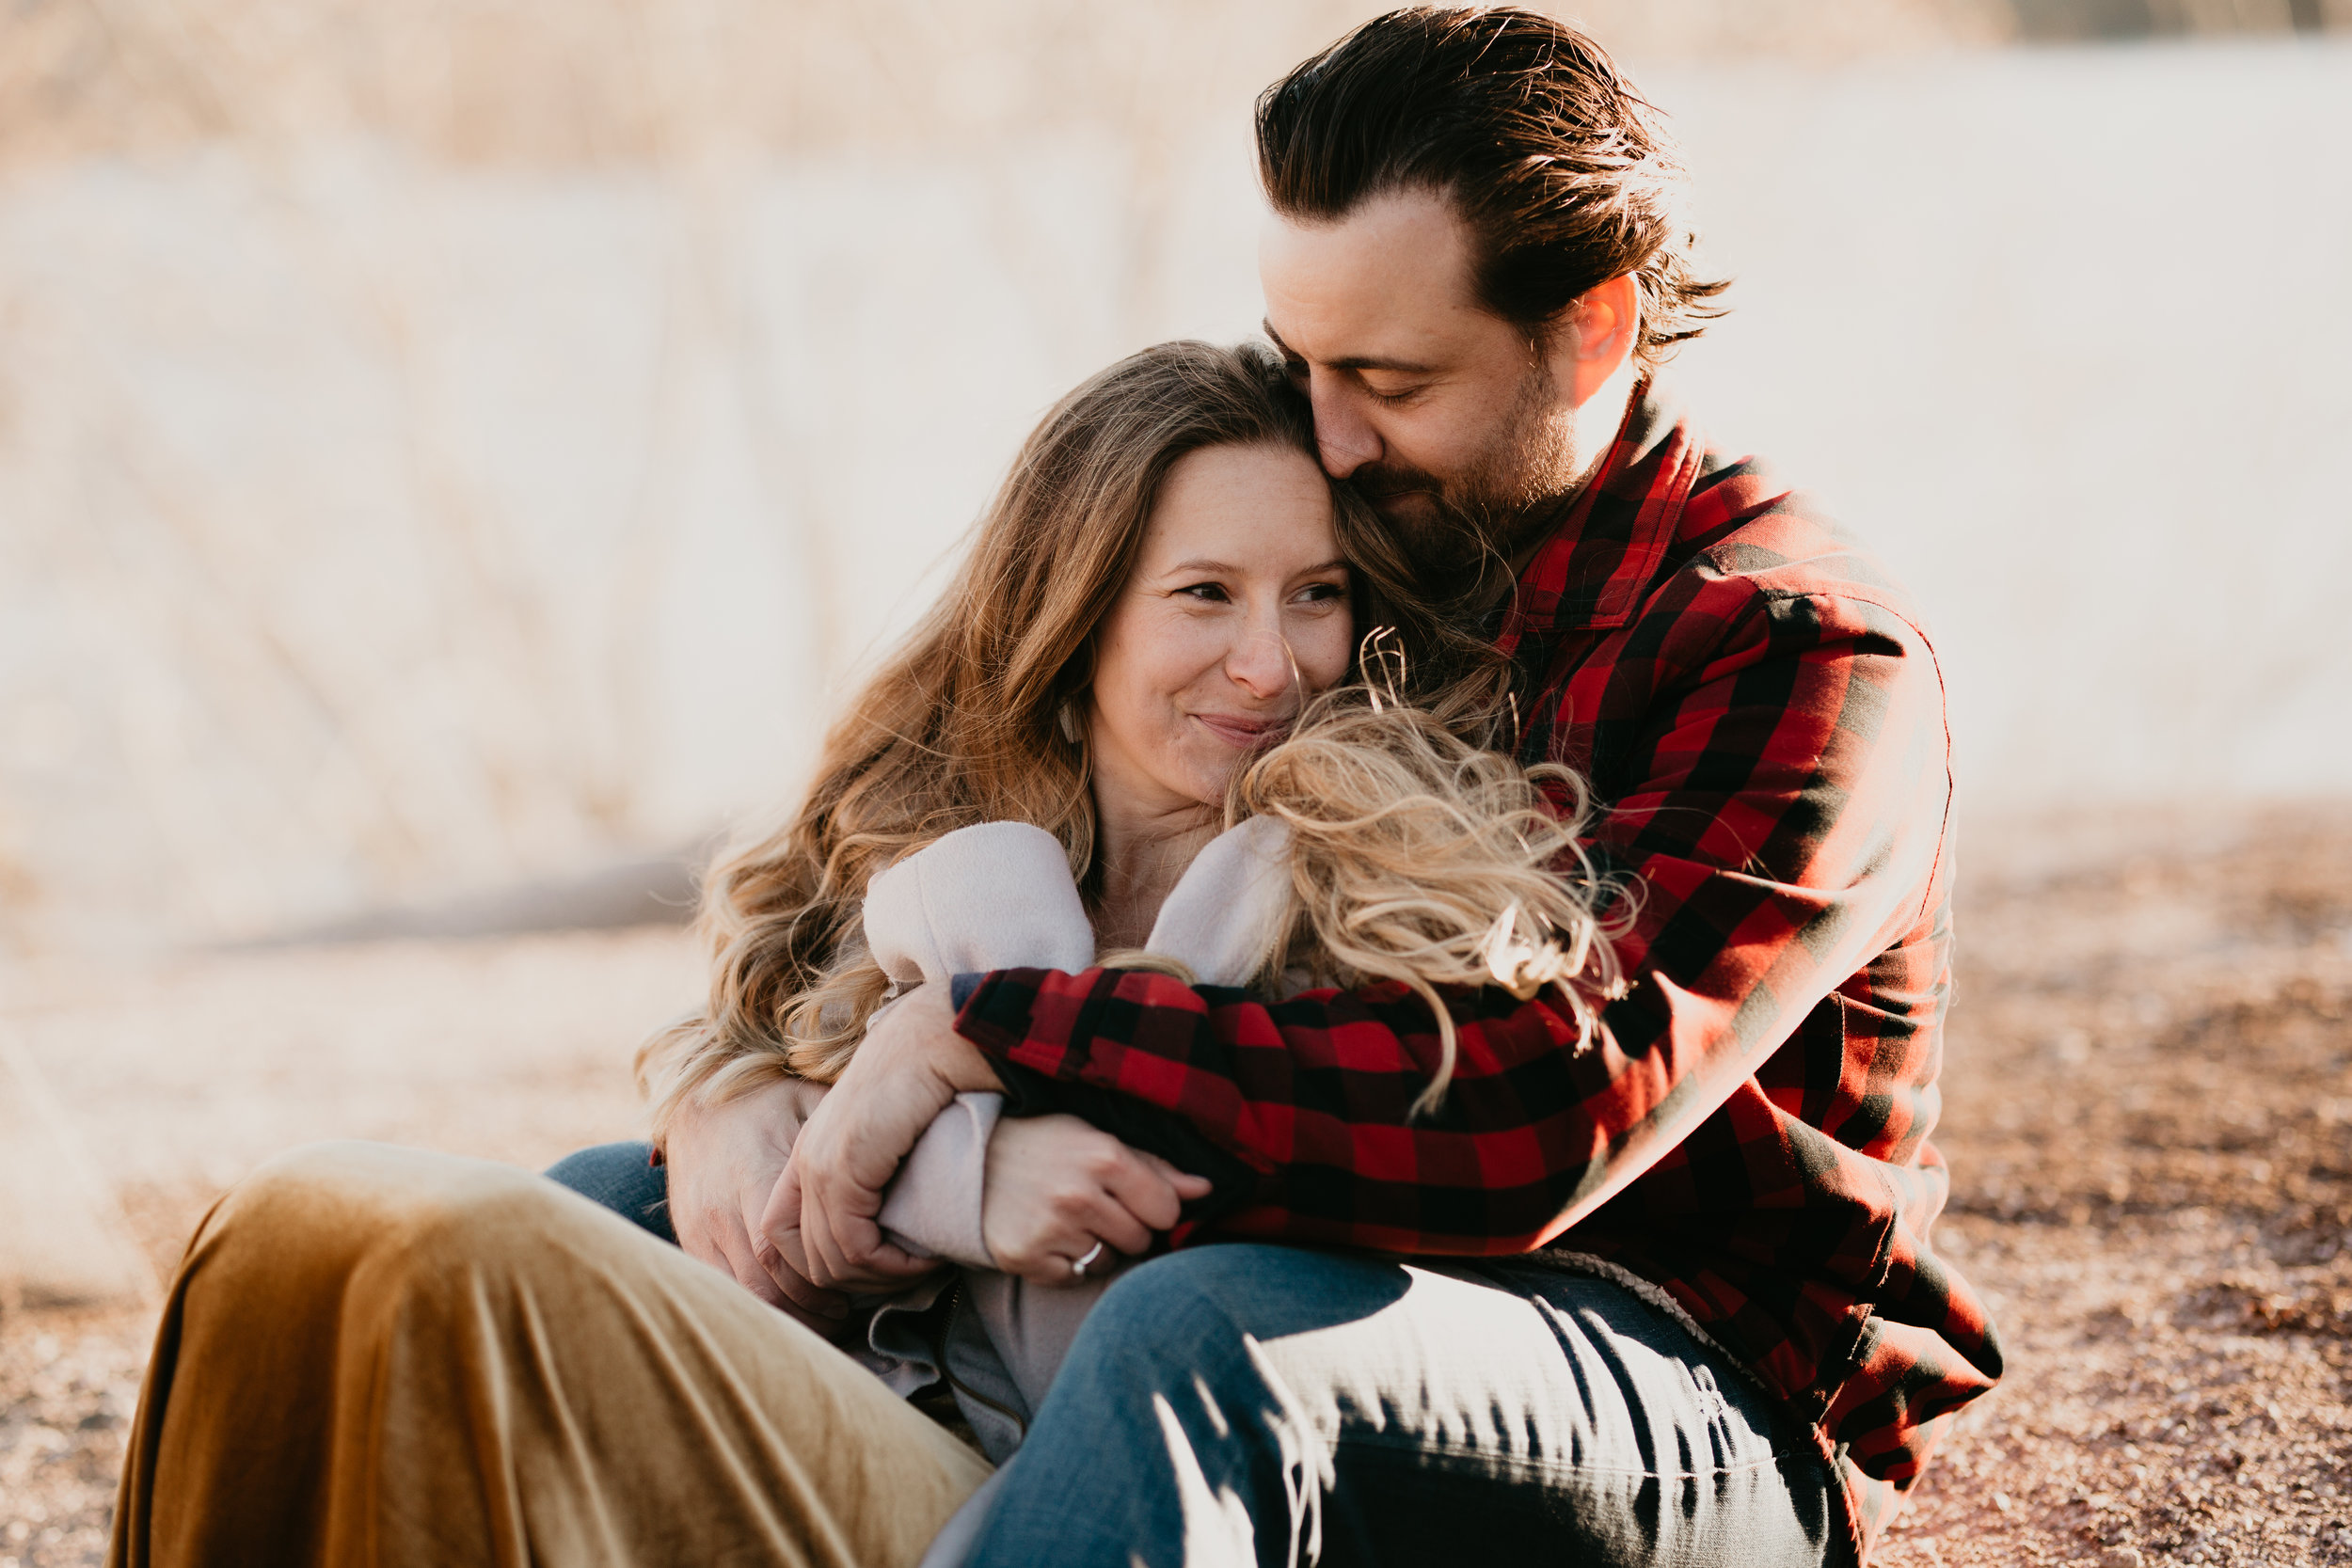 nicole-daacke-photography-white-cliffs-of-conoy-in-lancaster-pa-pennsylvania-adventure-session-adventure-elopement-photographer-engagement session-in-lancaster-pa-photographer-golden-sunset-winter-solstice-wedding-riverside-elopement-4888.jpg